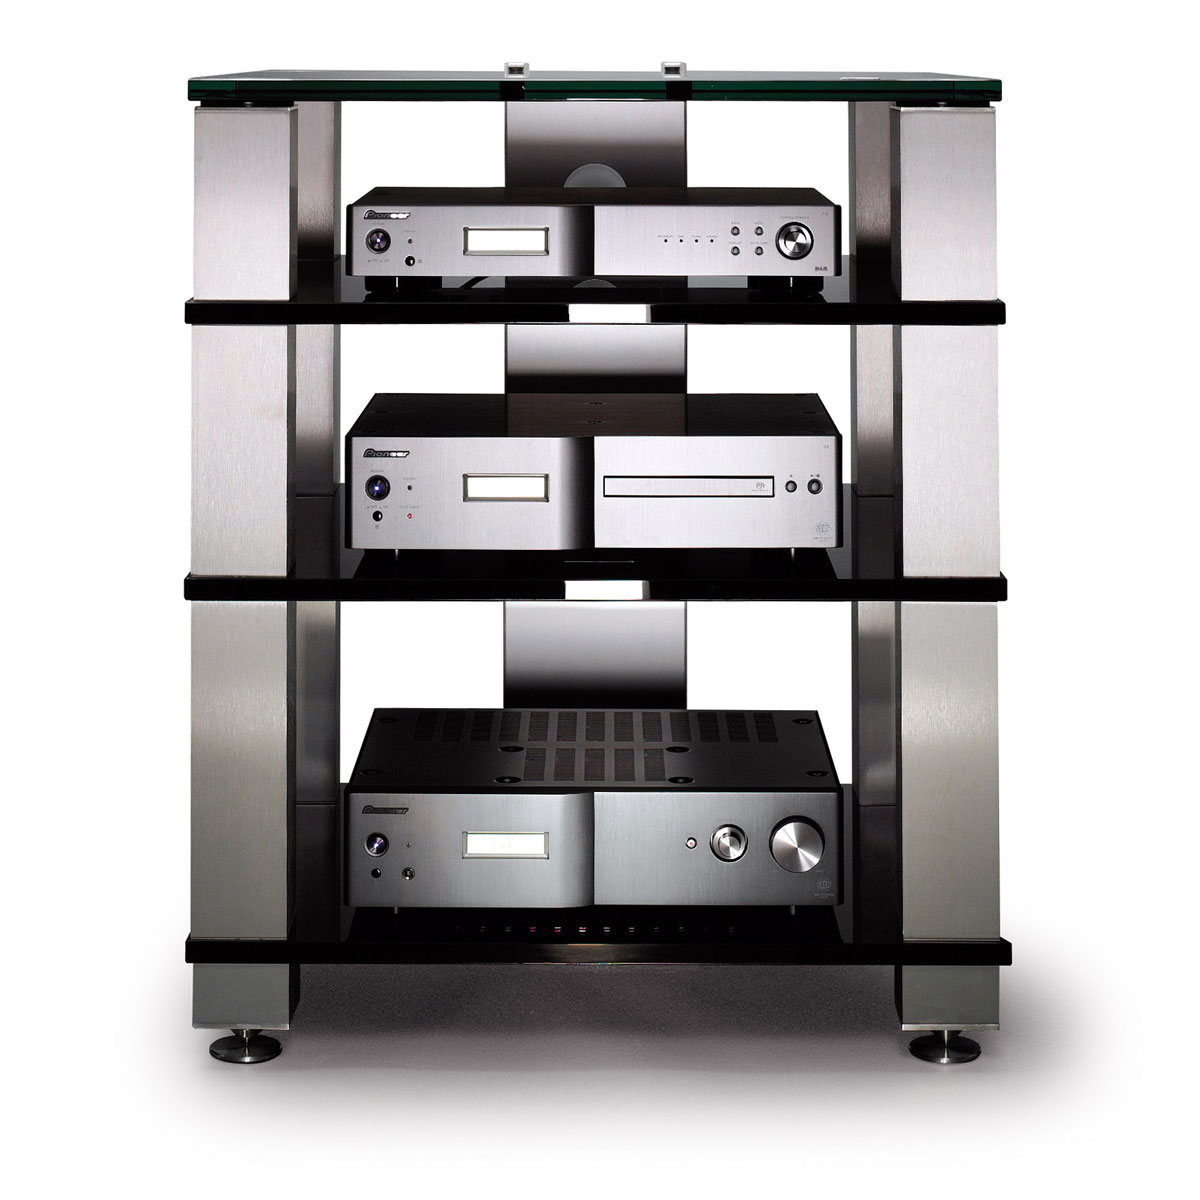 Hifi Regal Glas Hifi Möbel Phonomöbel Hifi Racks Hifi Regale Audio